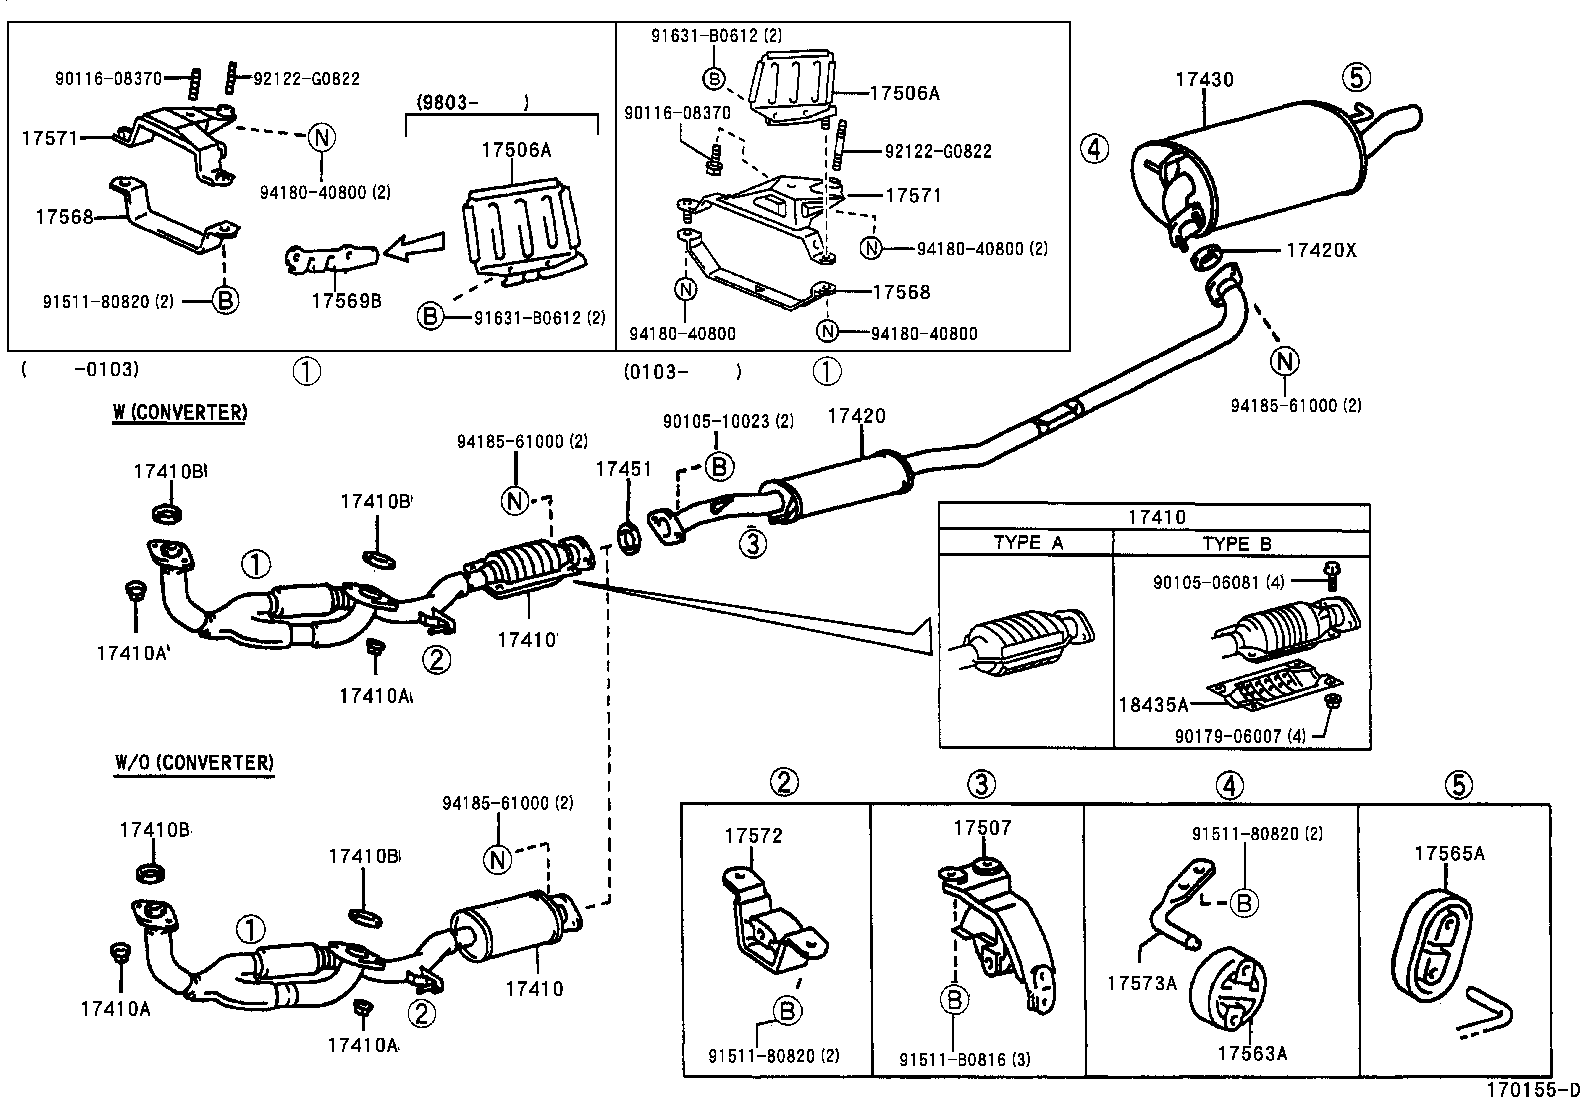 Toyota Celica Gts Engine Diagram